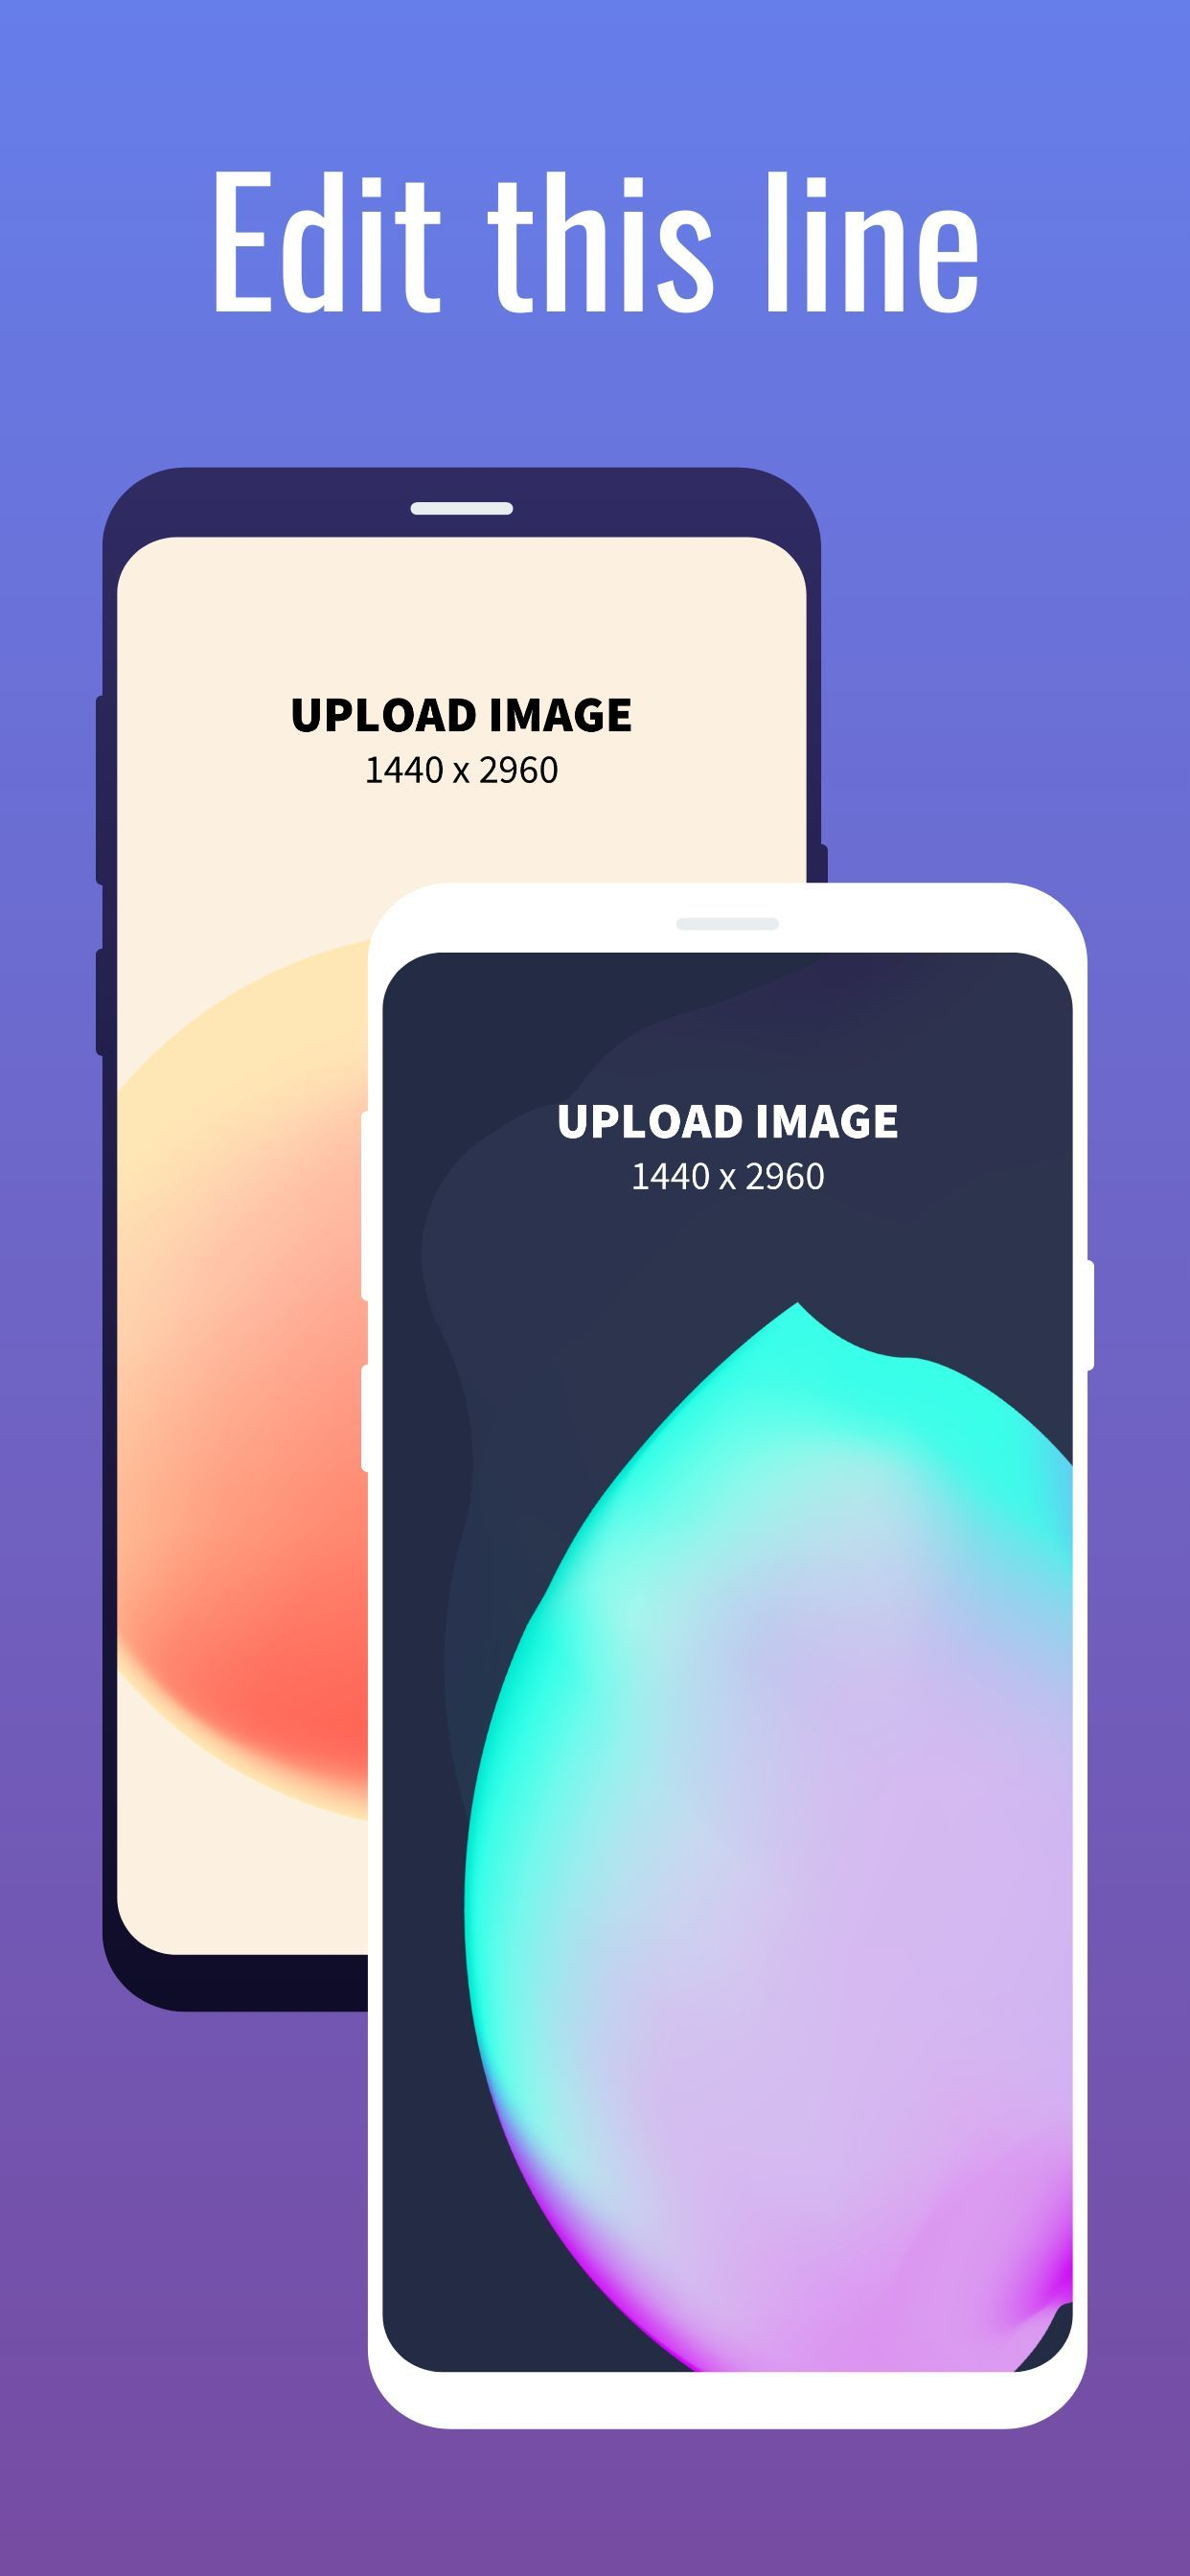 Samsung S9 Screenshot 6 template. Quickly edit text, colors, images, and more for free.